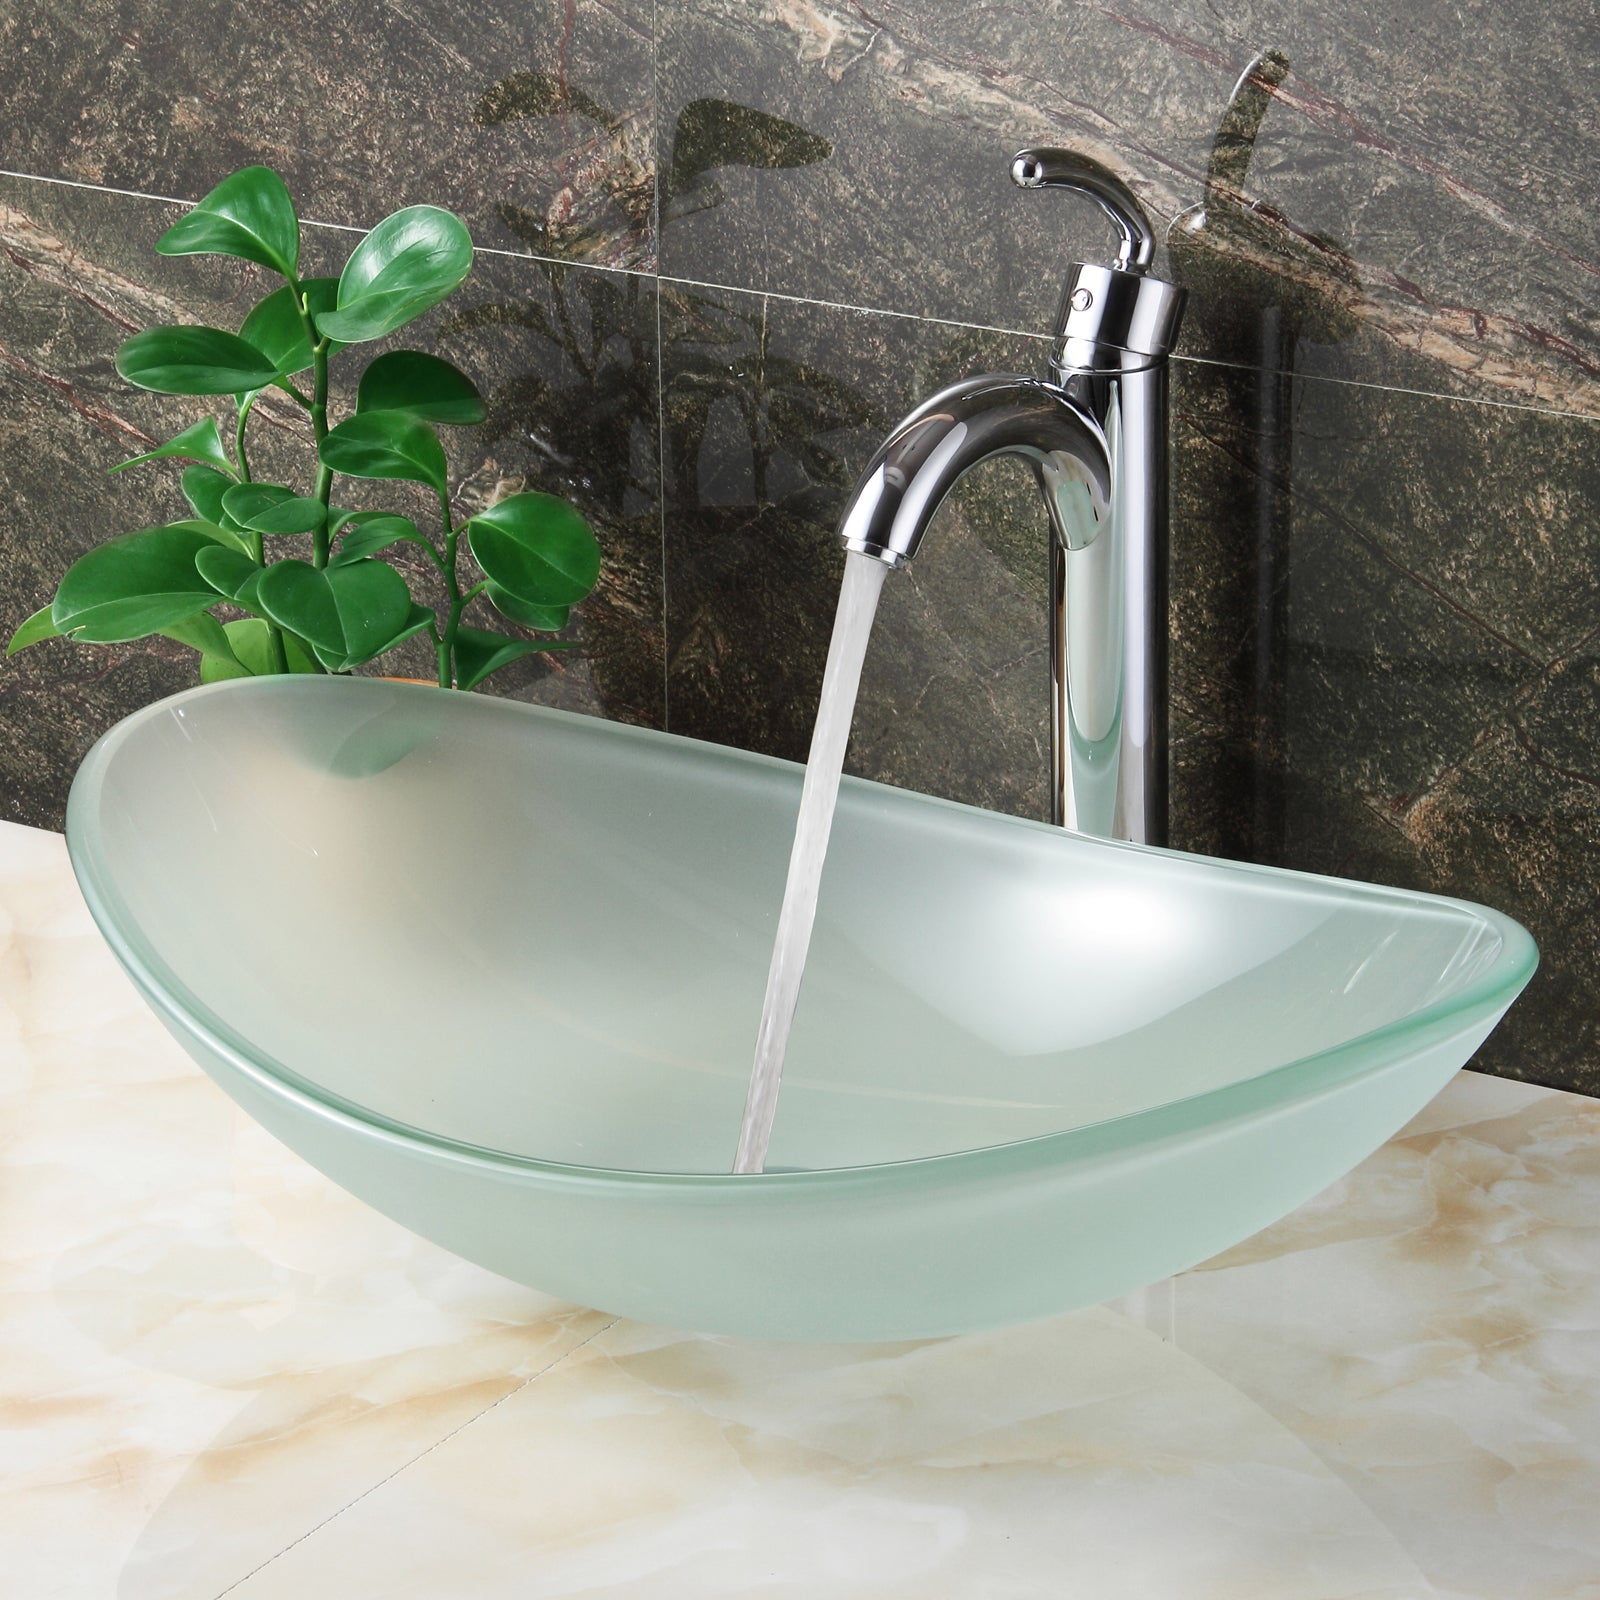 Elite Oval Shape Frosted Tempered Bathroom Glass Vessel Sink And Faucet Combo Overstock 9751972